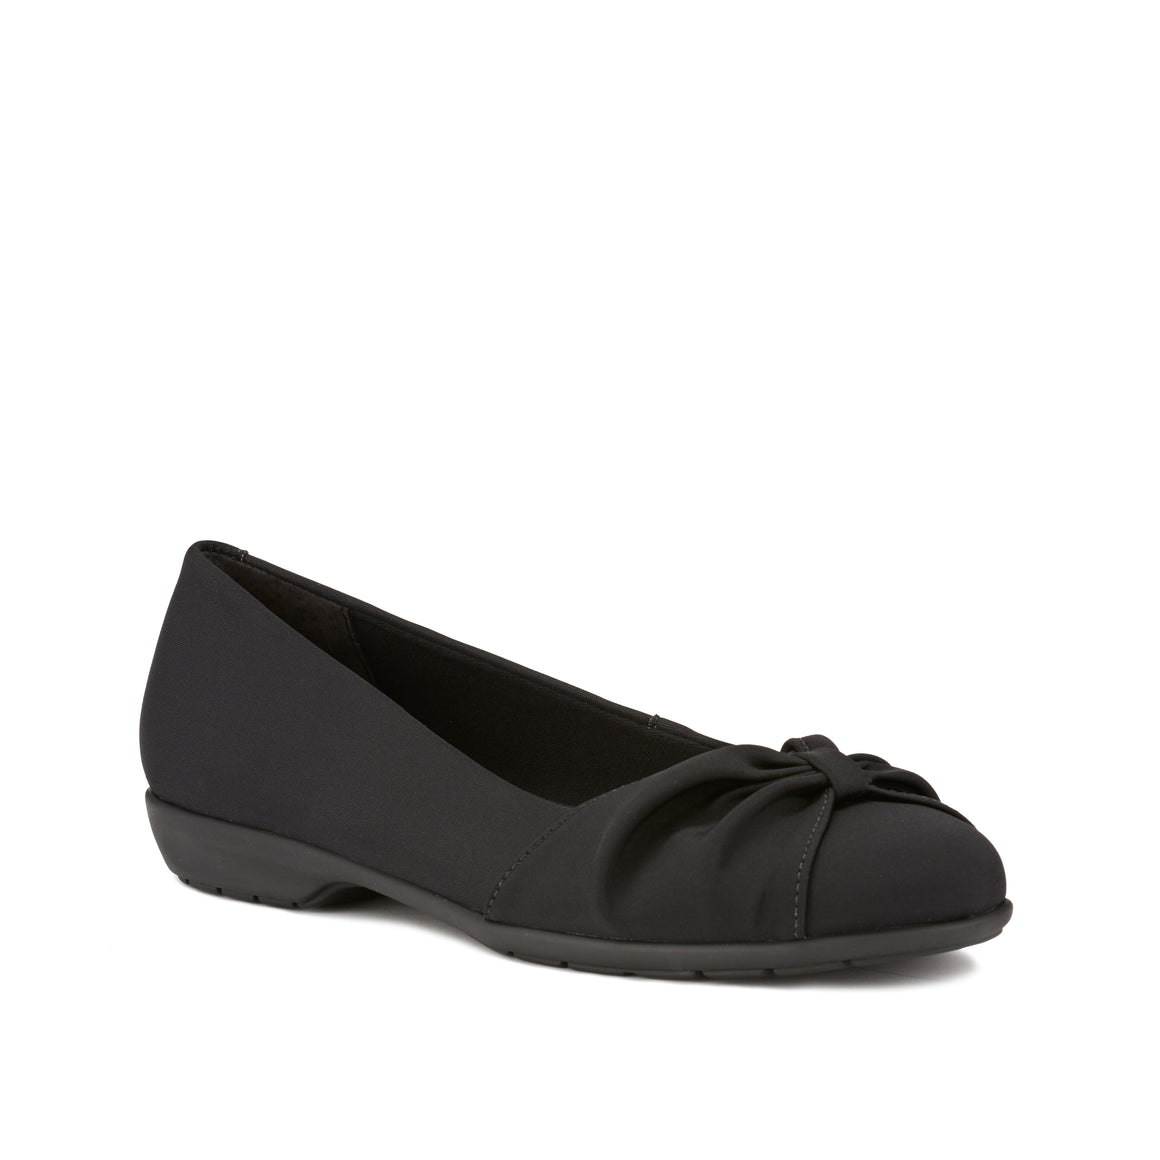 Image of the Fall. A comfortable black micro fabric slip on shoe with a low heel.  Available in narrow width, wide width and extra wide widths.